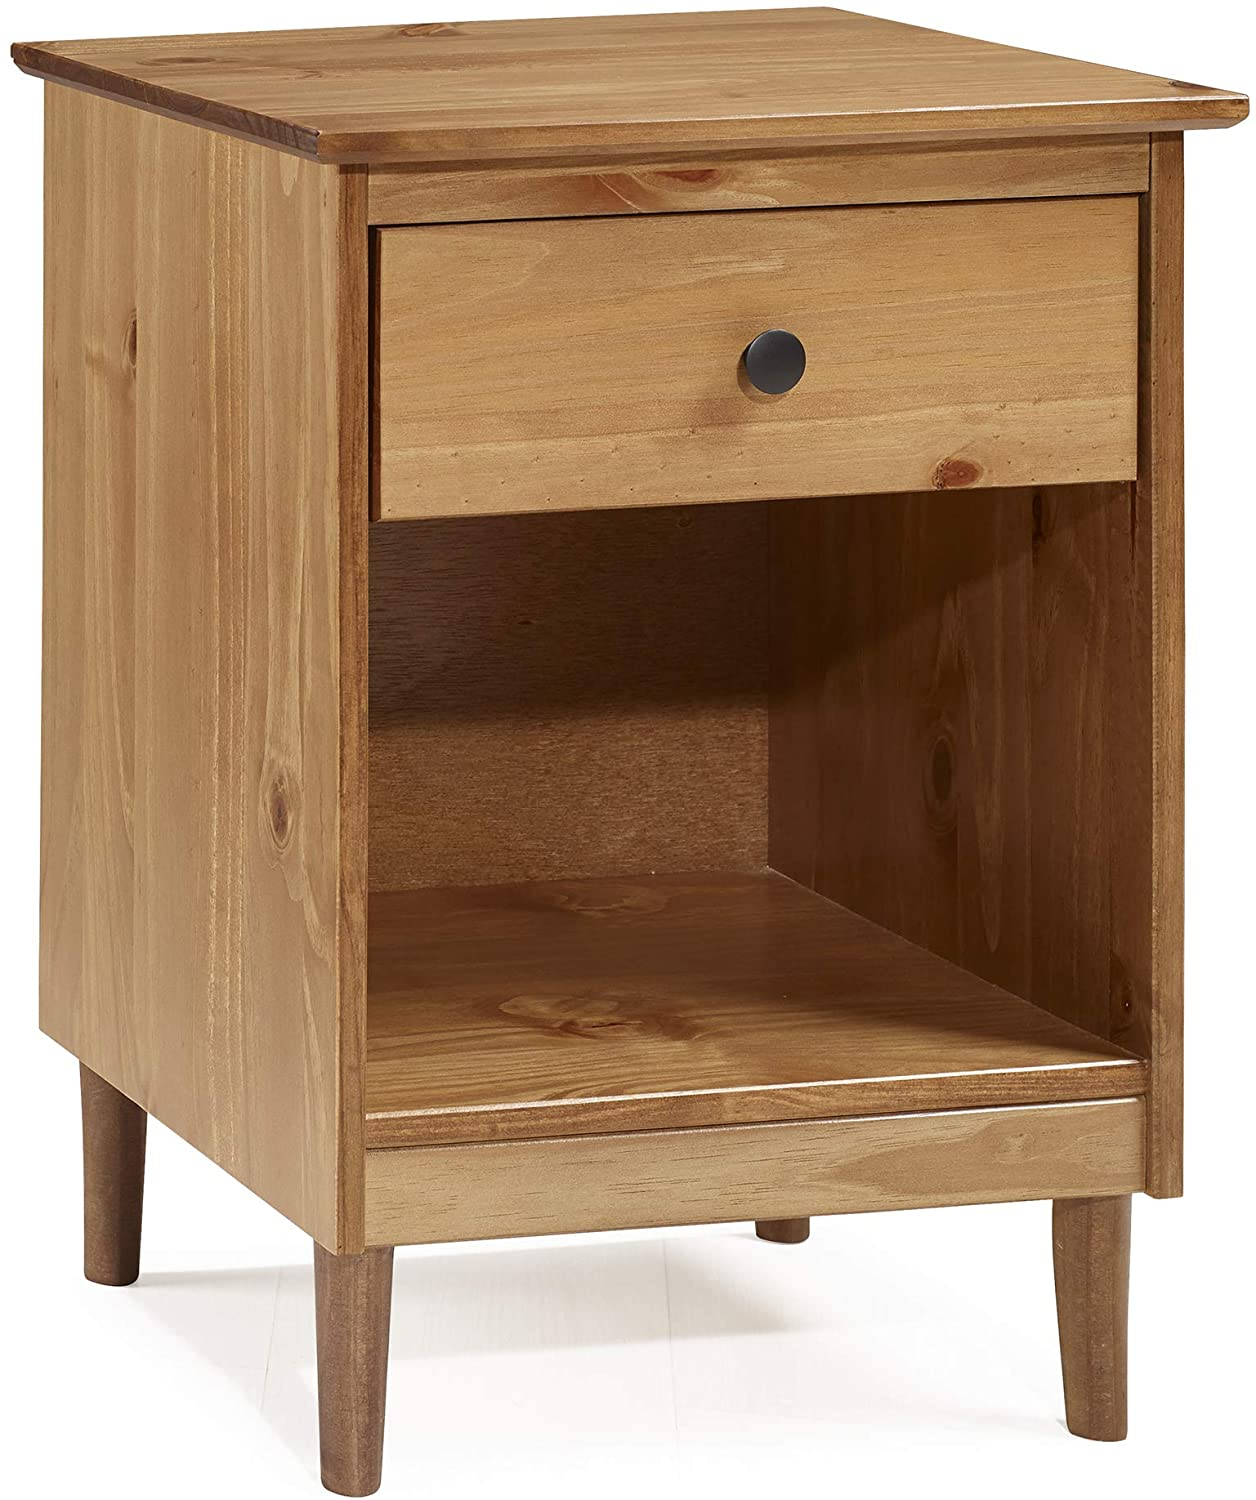 Eden Bridge Designs Classic Modern Nightstand Unit Cabinet With 1 Drawer Solid Pine Wood Mdf Plastic Metal Hardware Caramel Amazon Co Uk Kitchen Home